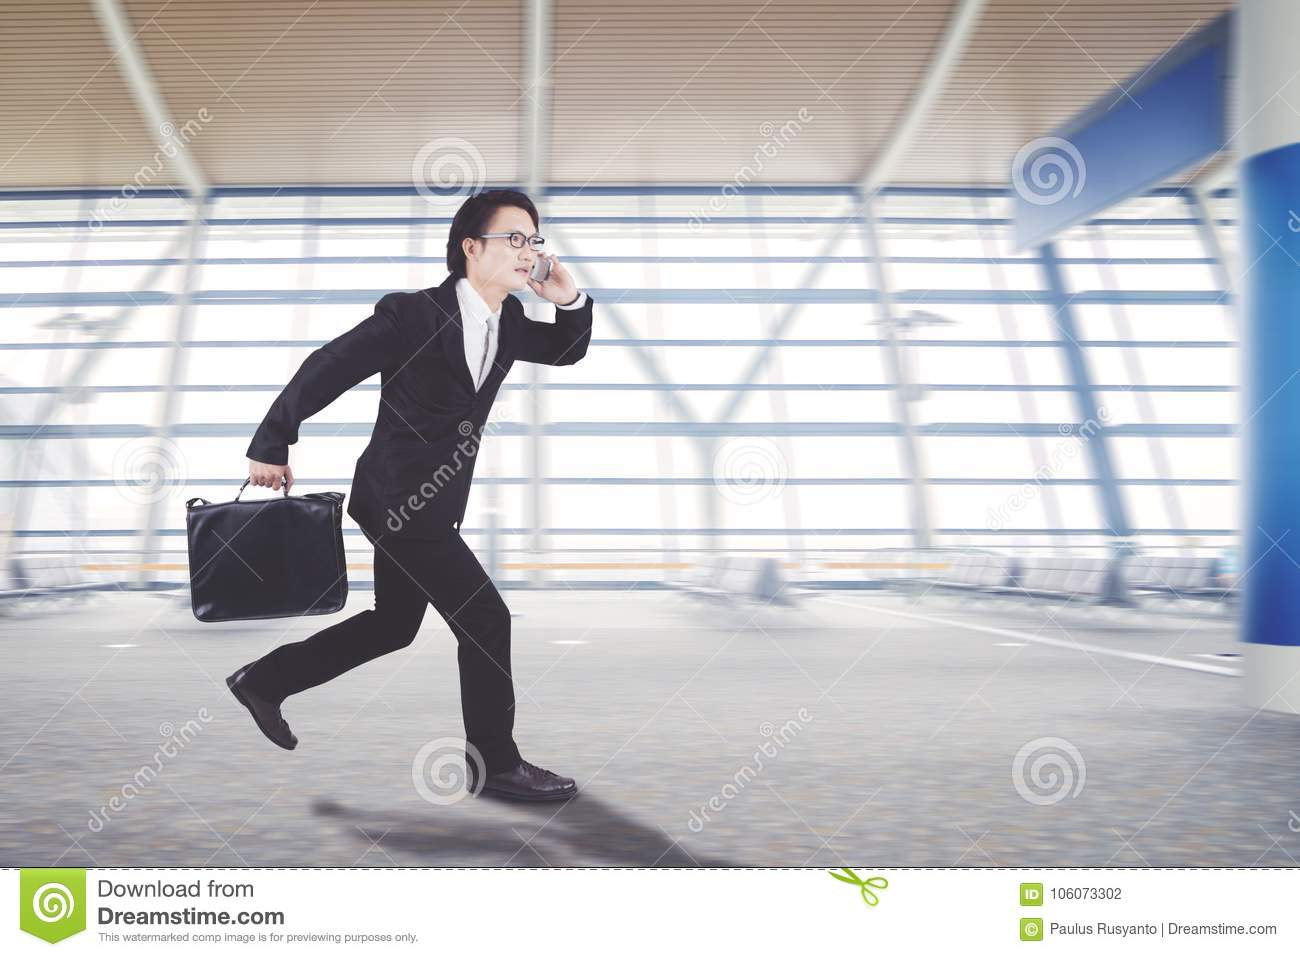 Asian businessman is running in the arrival hall